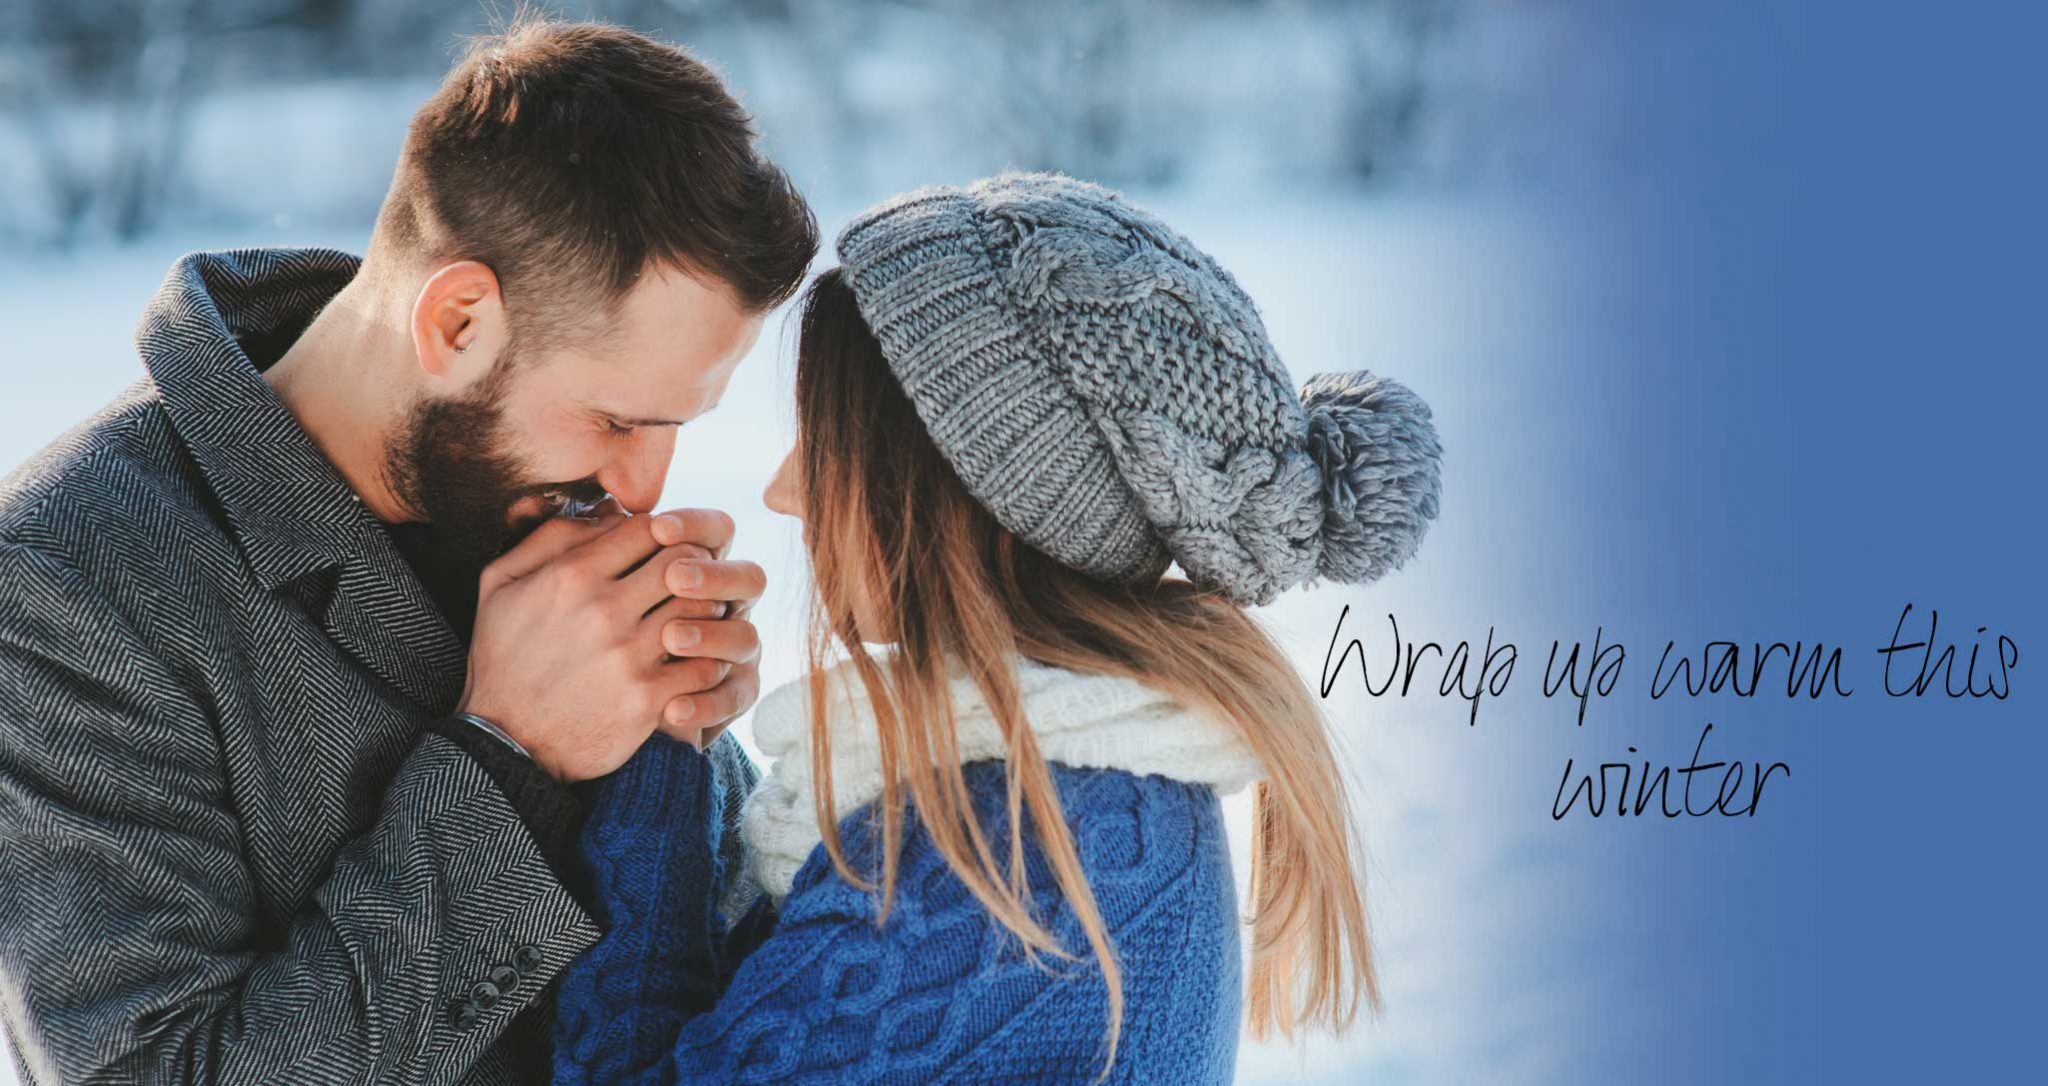 Drakes Jewellers, Wrap up warm this winter